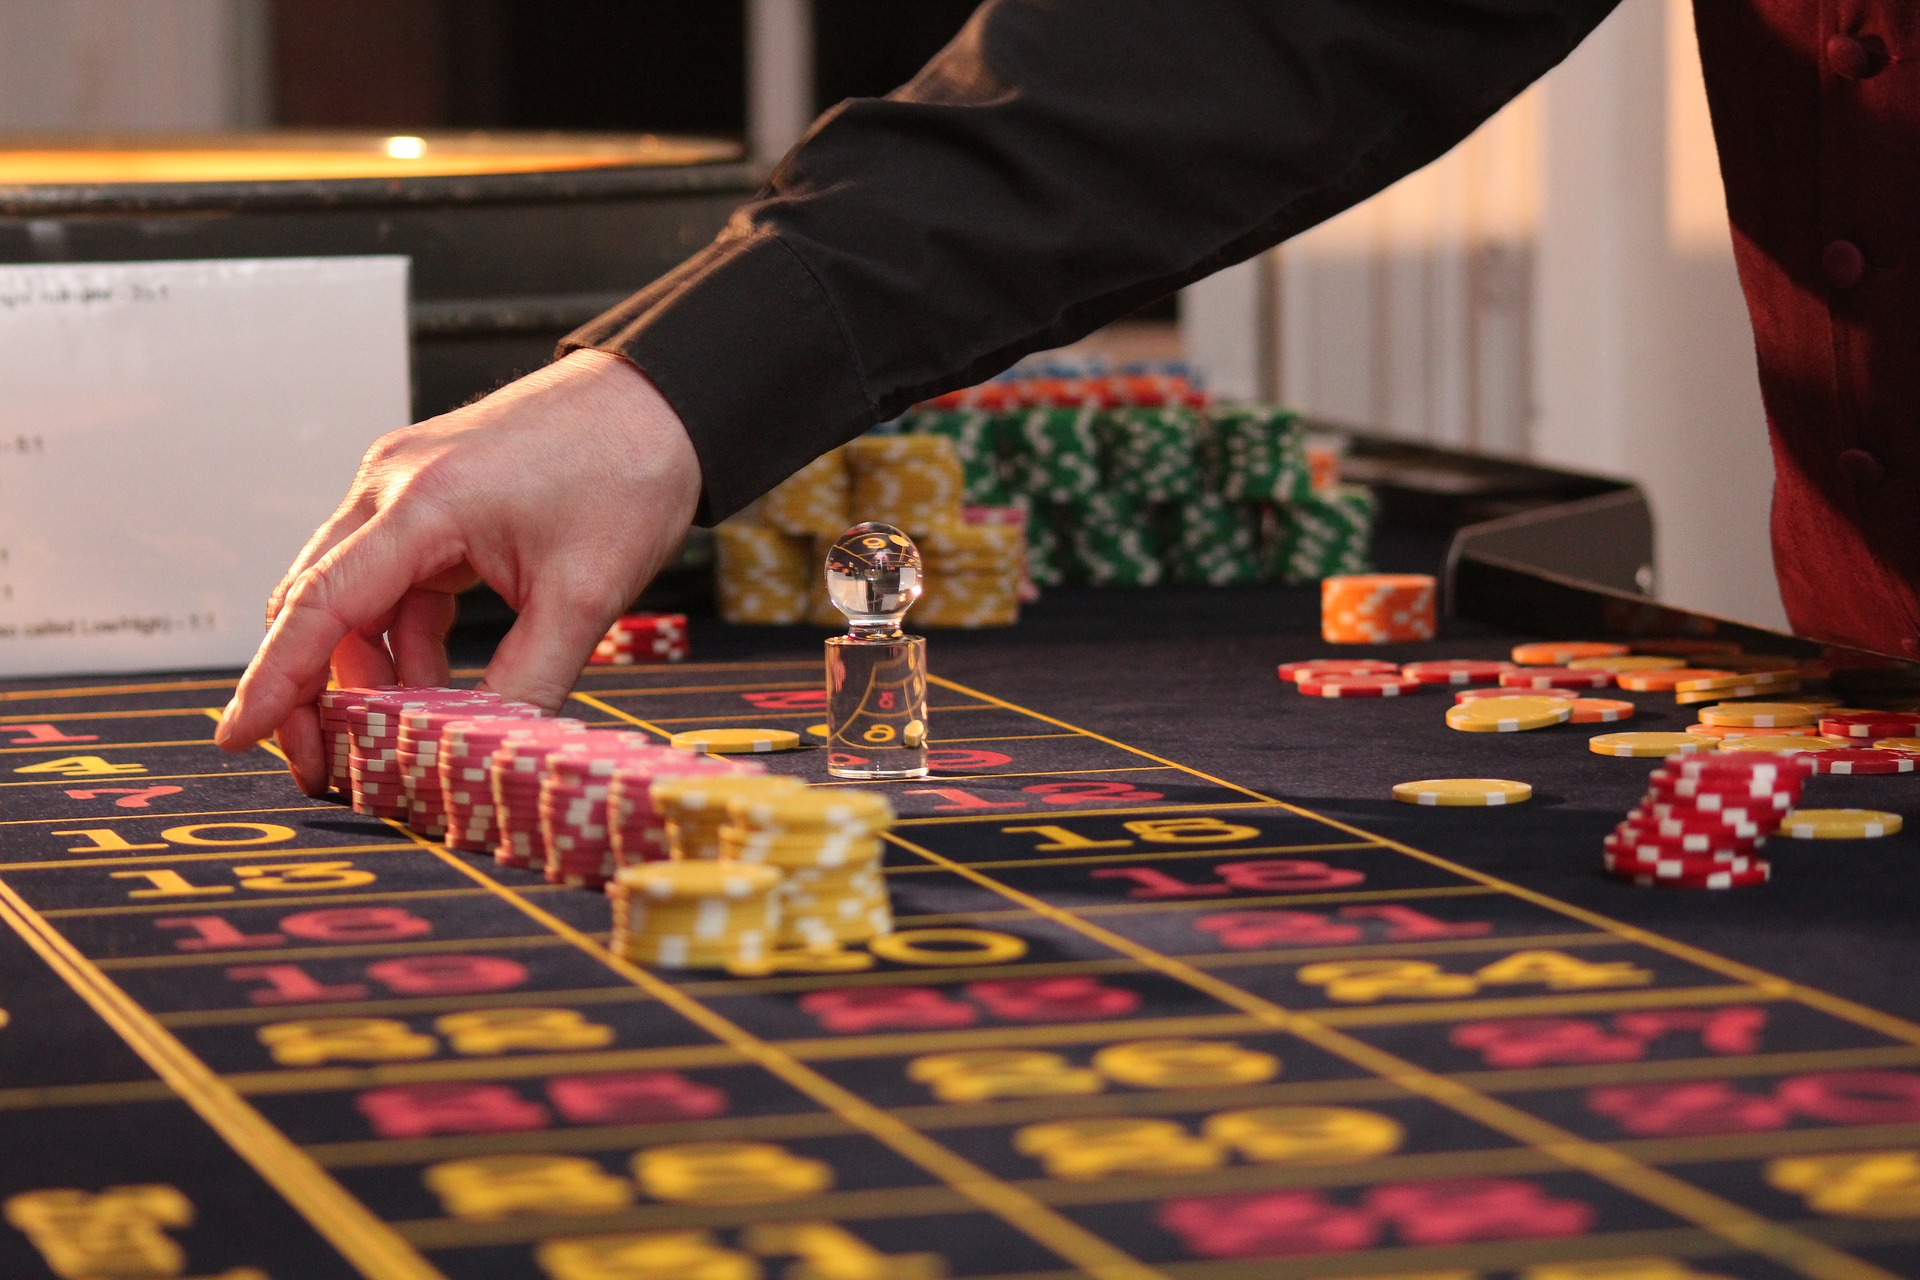 Public Domain. [Photo description: a roulette table piled with stacks of chips, with a dealer's hand reaching across it.]